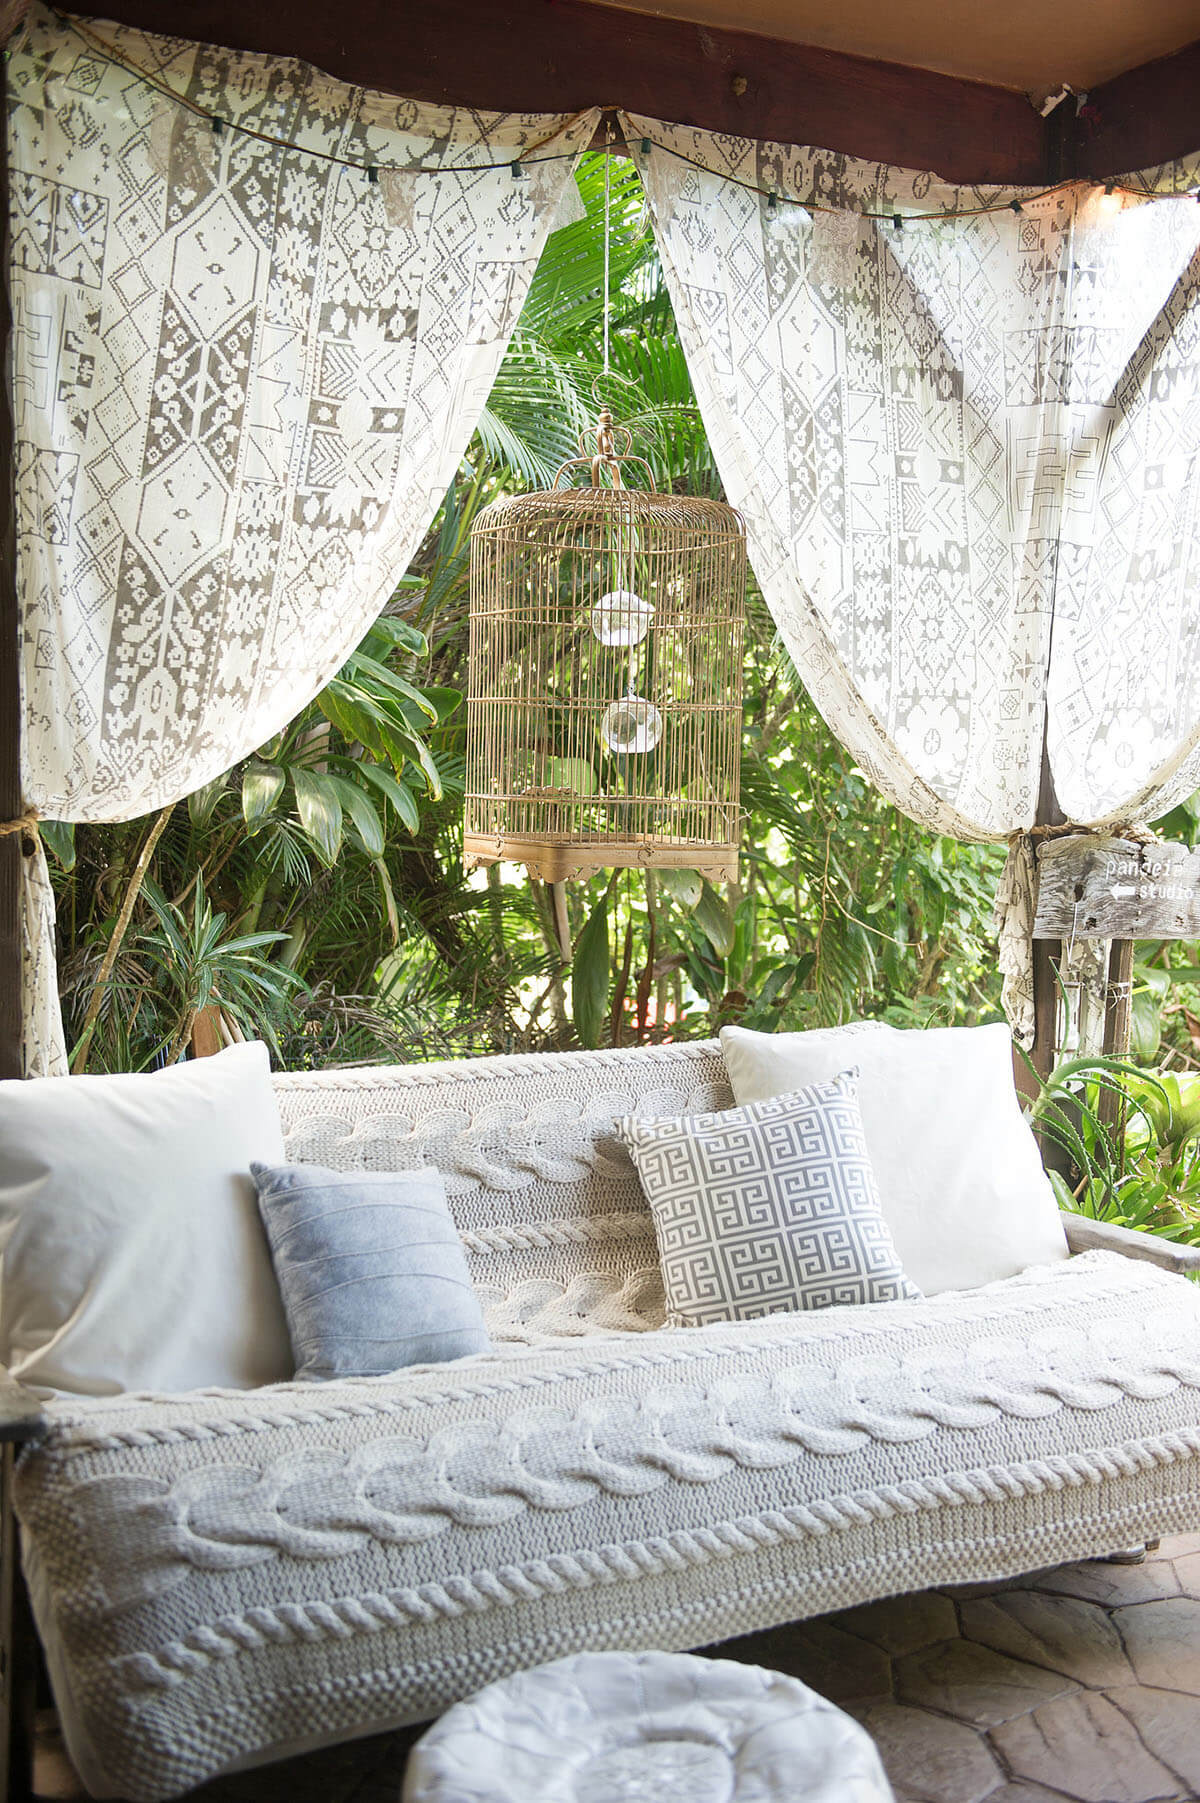 Neutral Tribal Patterns for Chic Boho Vibe